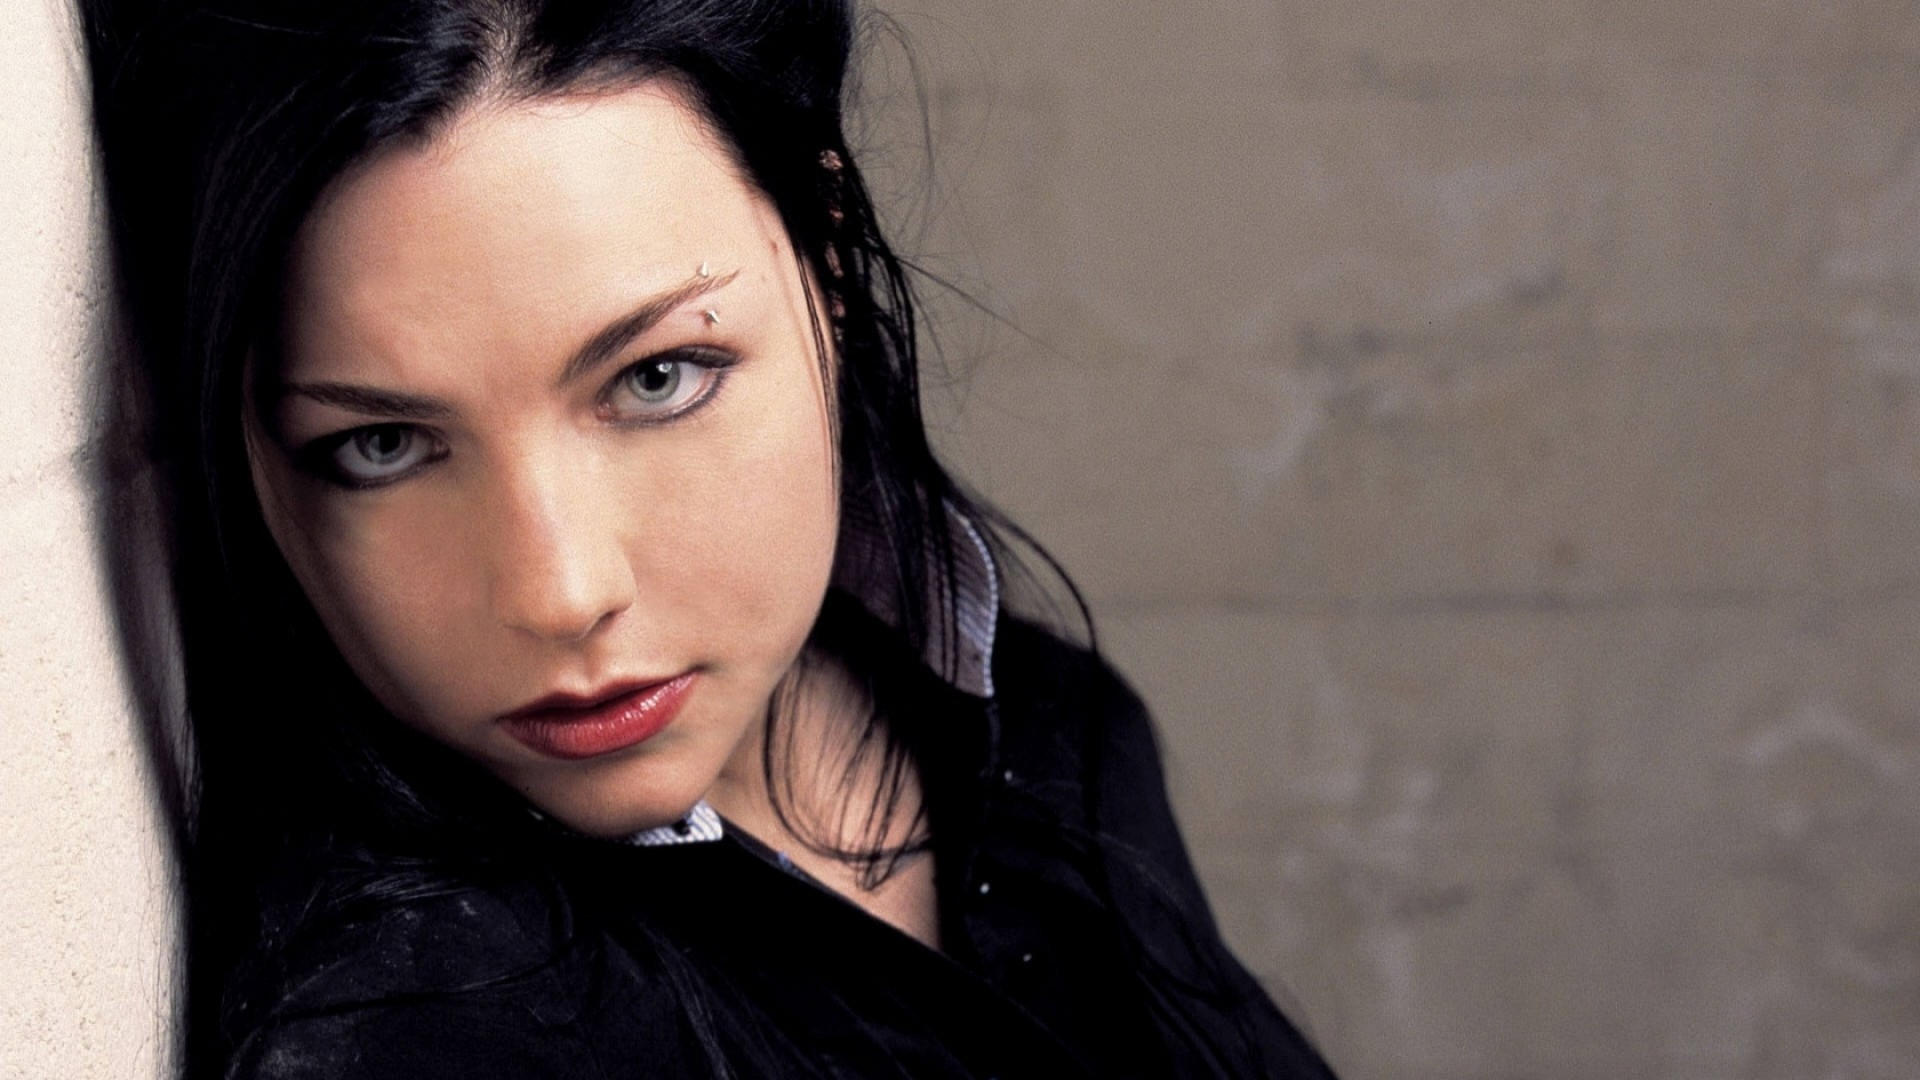 evanescence, name, graphics · evanescence, eyes, look